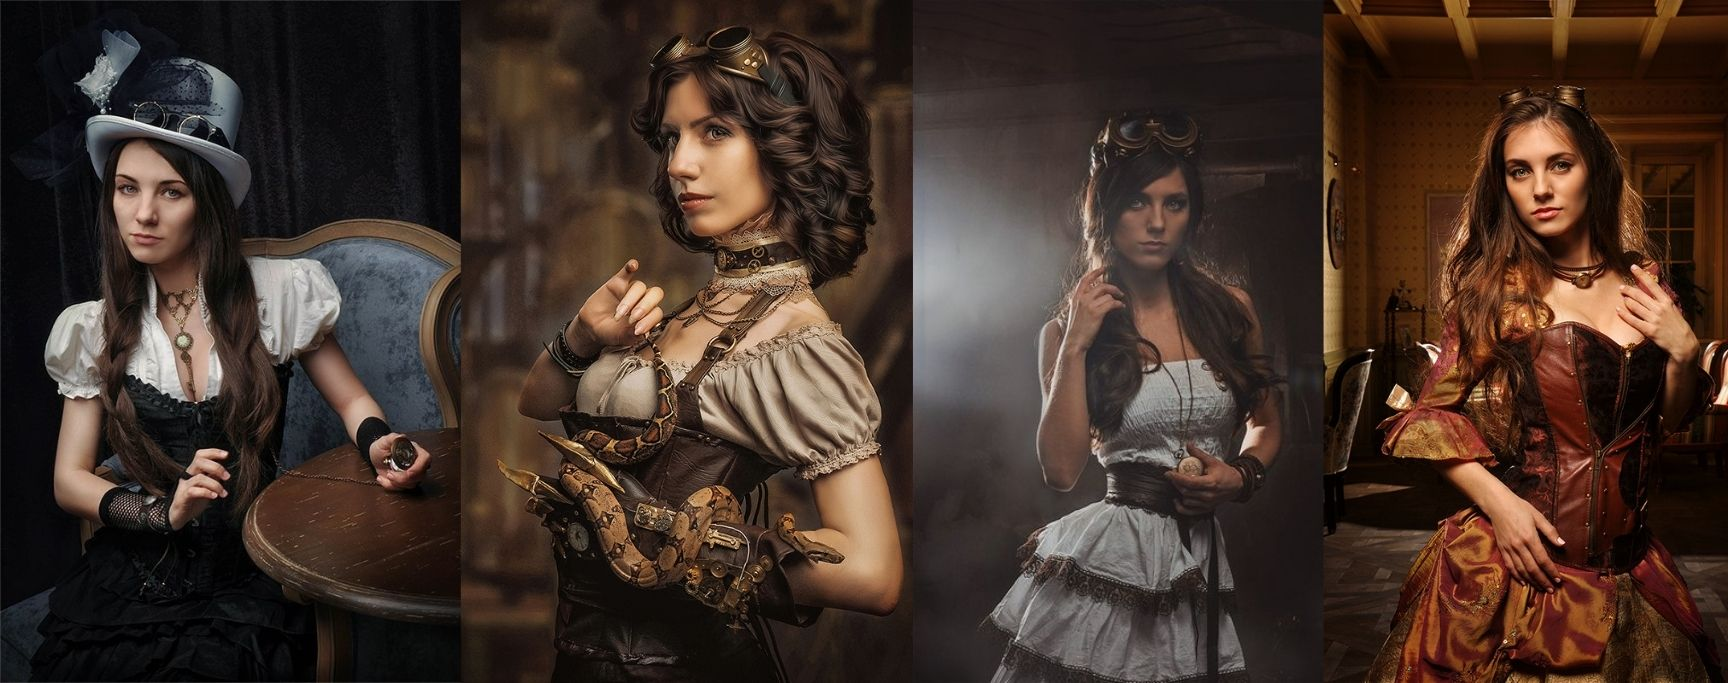 personnage steampunk femme